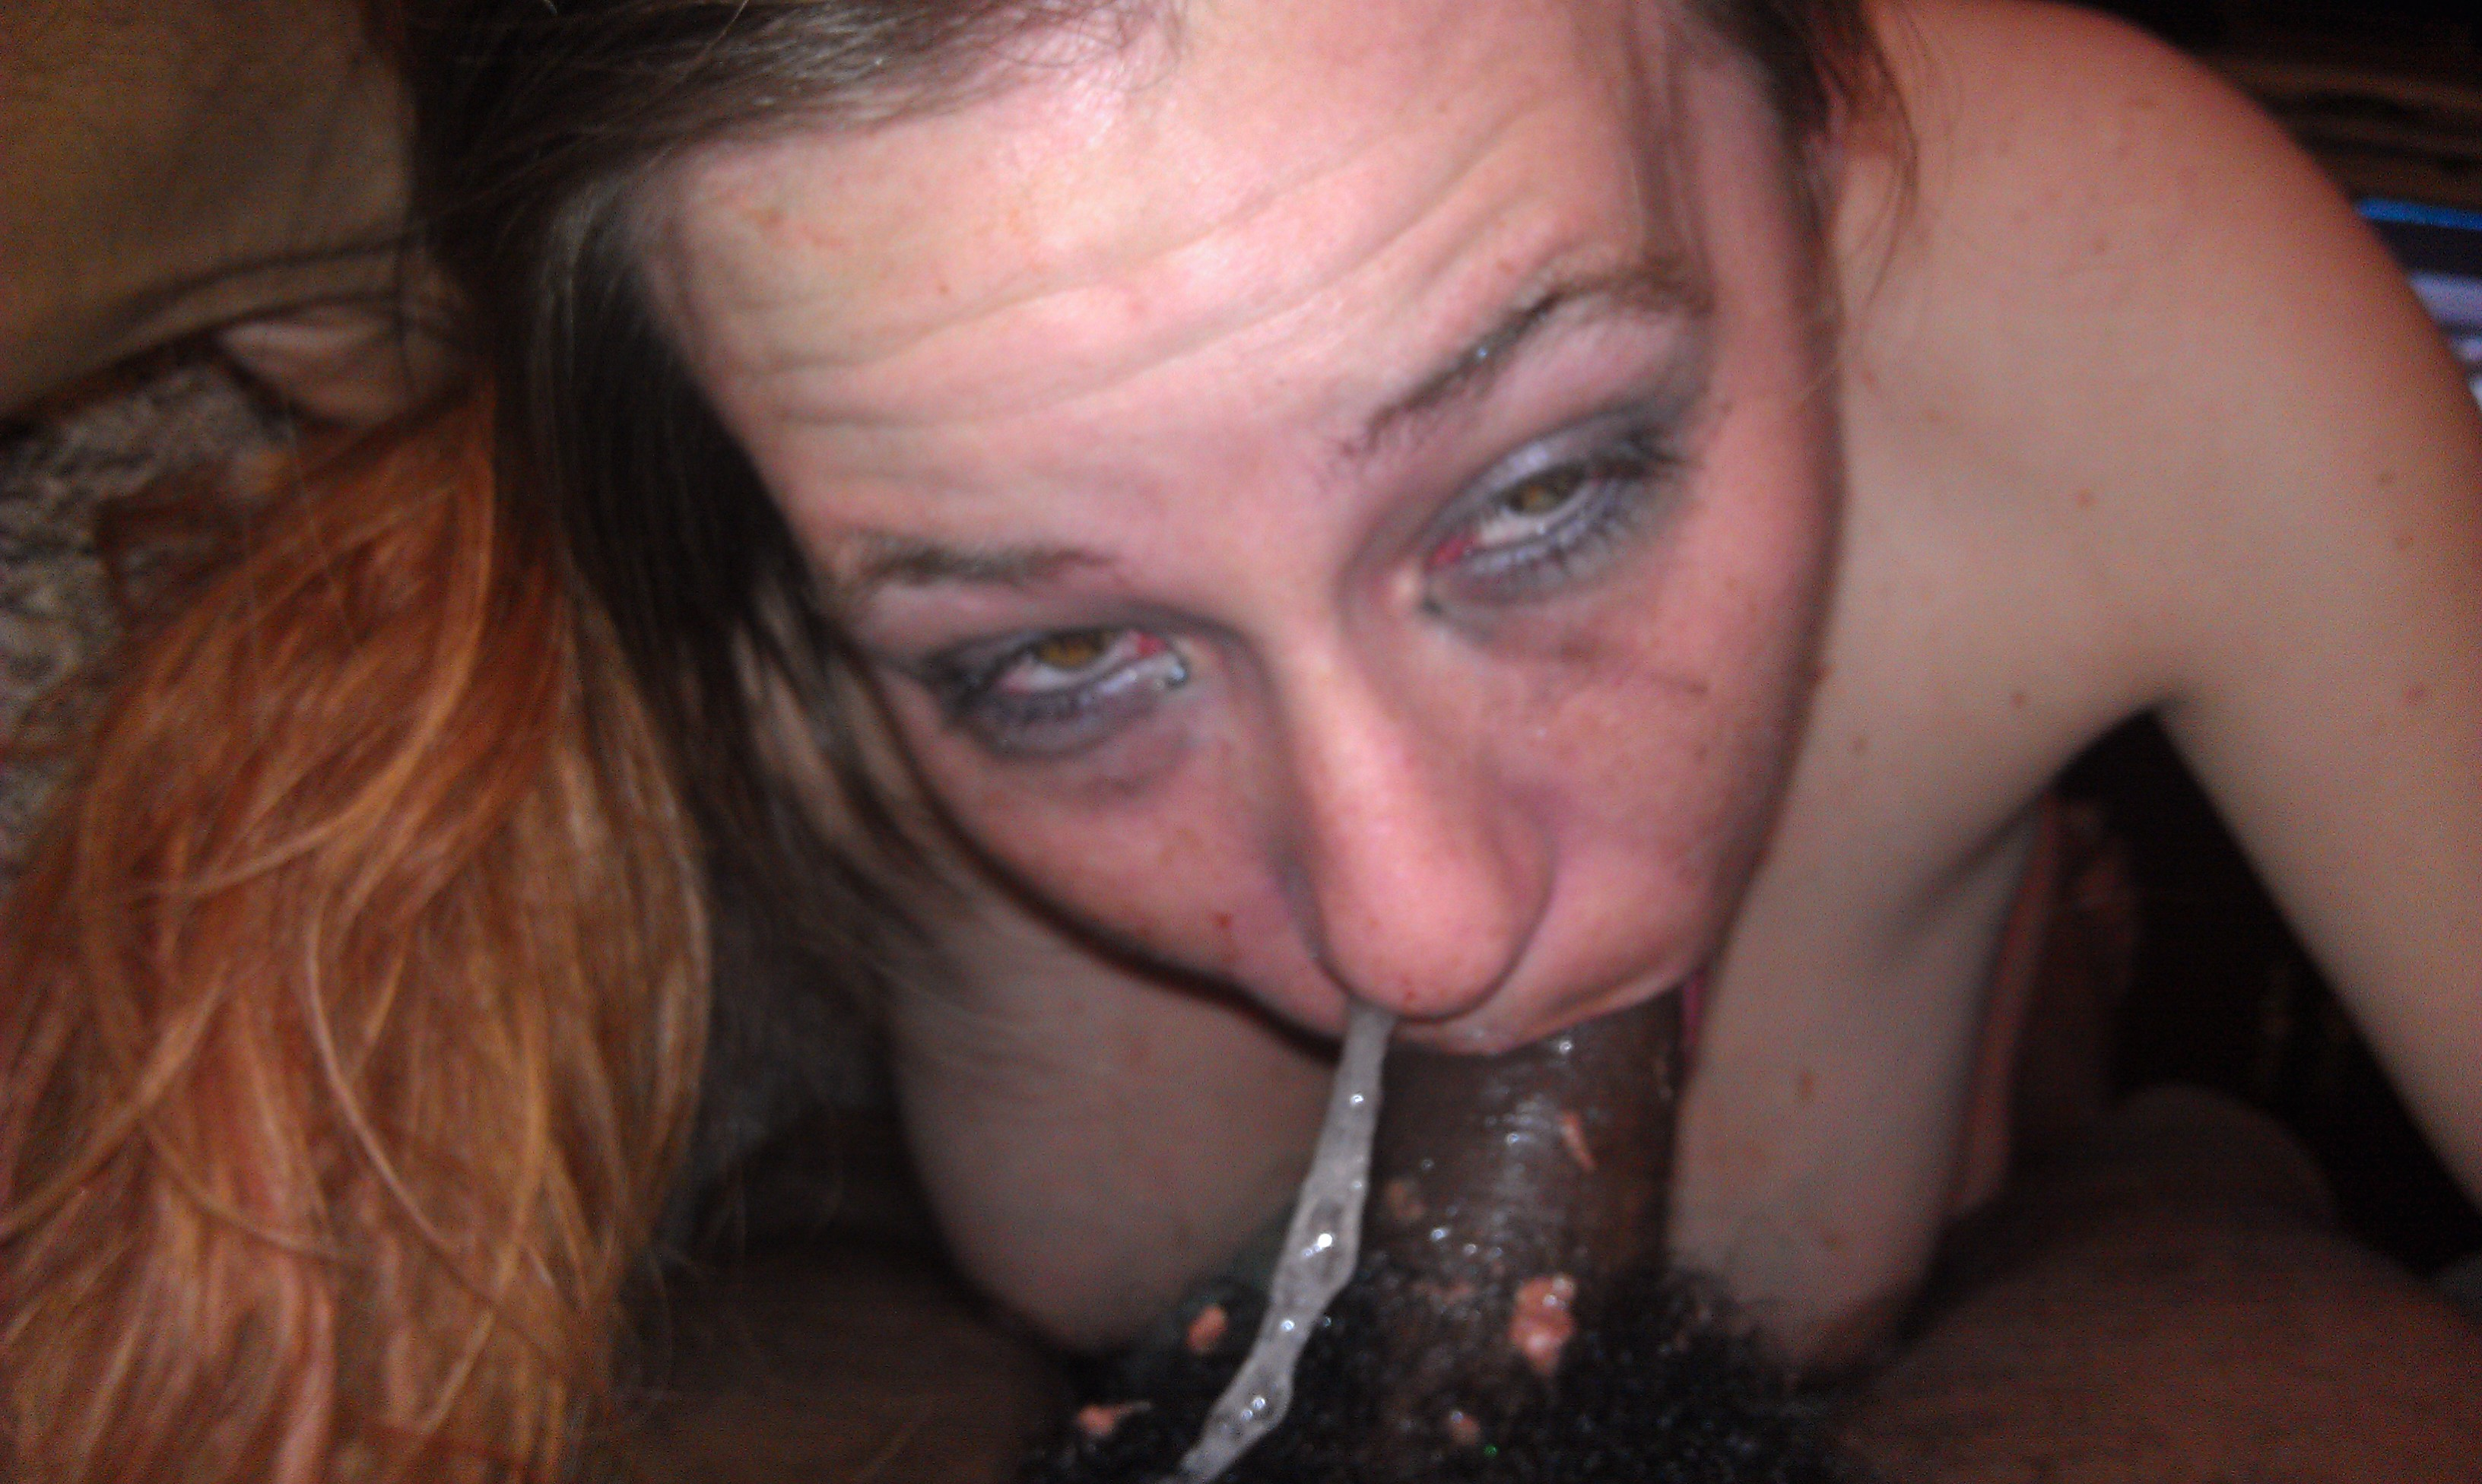 Deepthroat sex training slave share your opinion